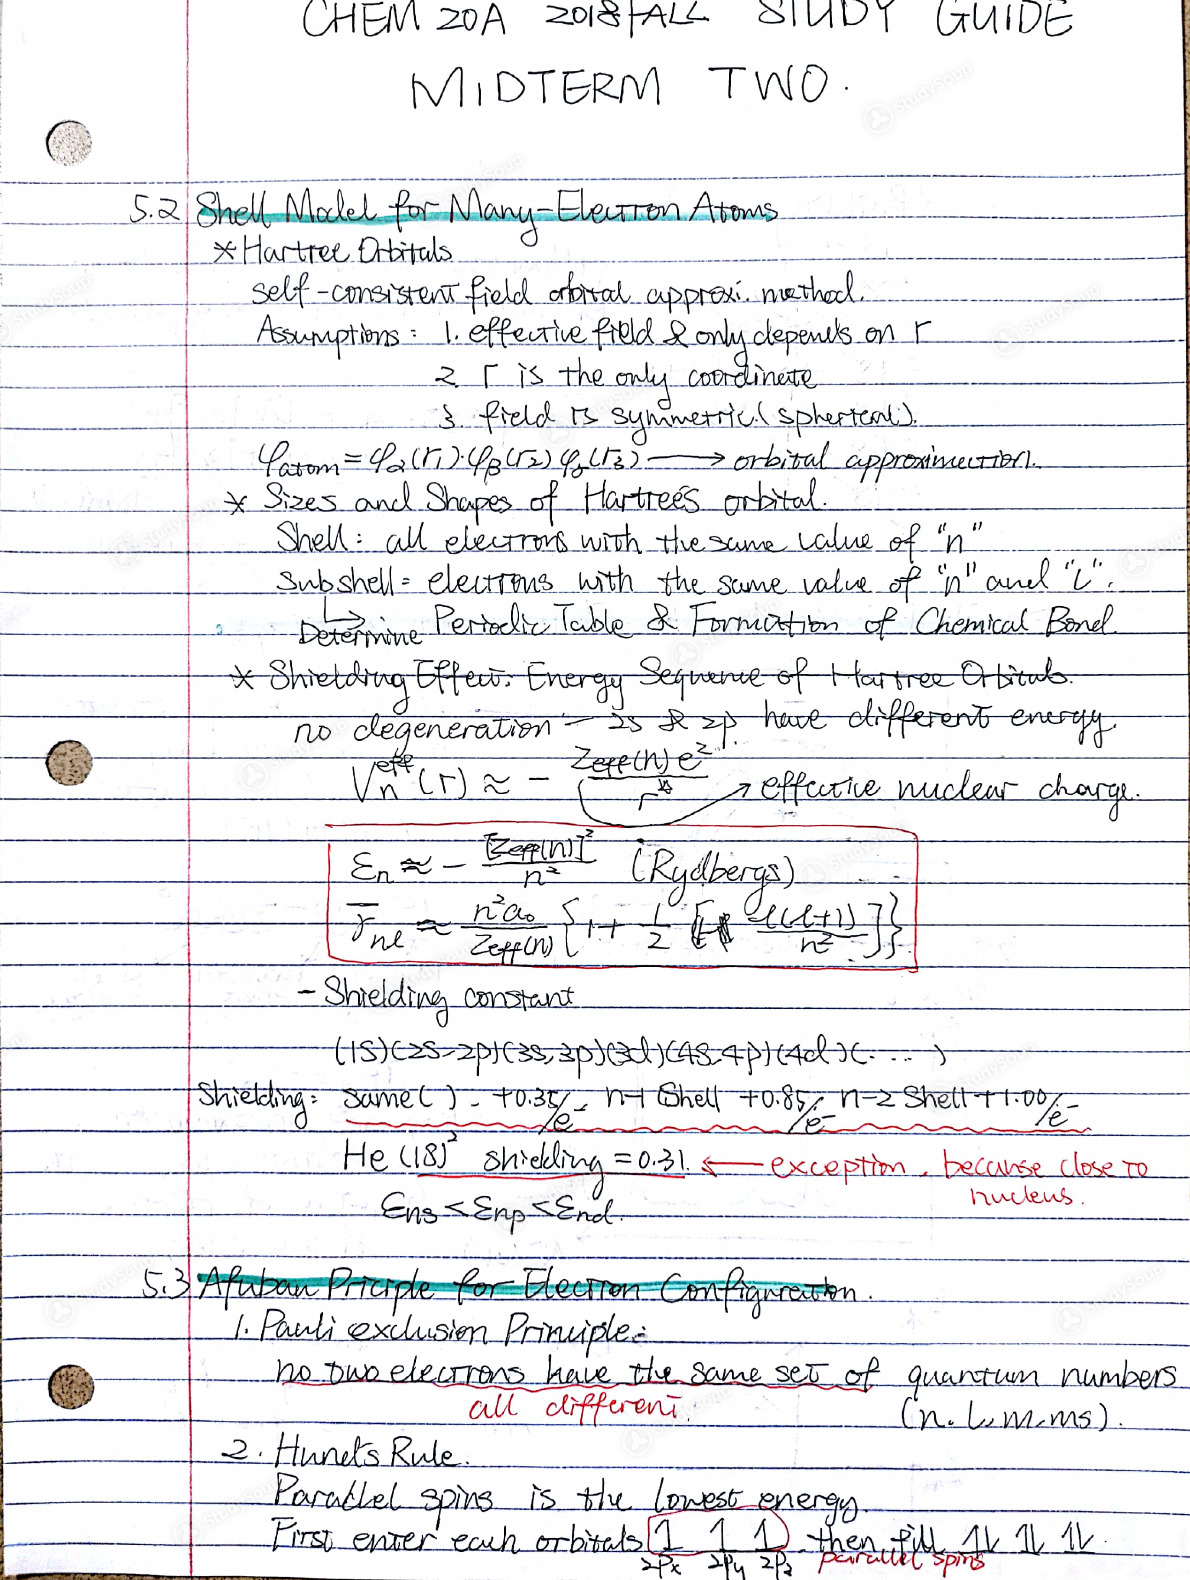 UCLA - CHEM 20 - CHEM20A Study Guides Midterm2 Chapter4-6